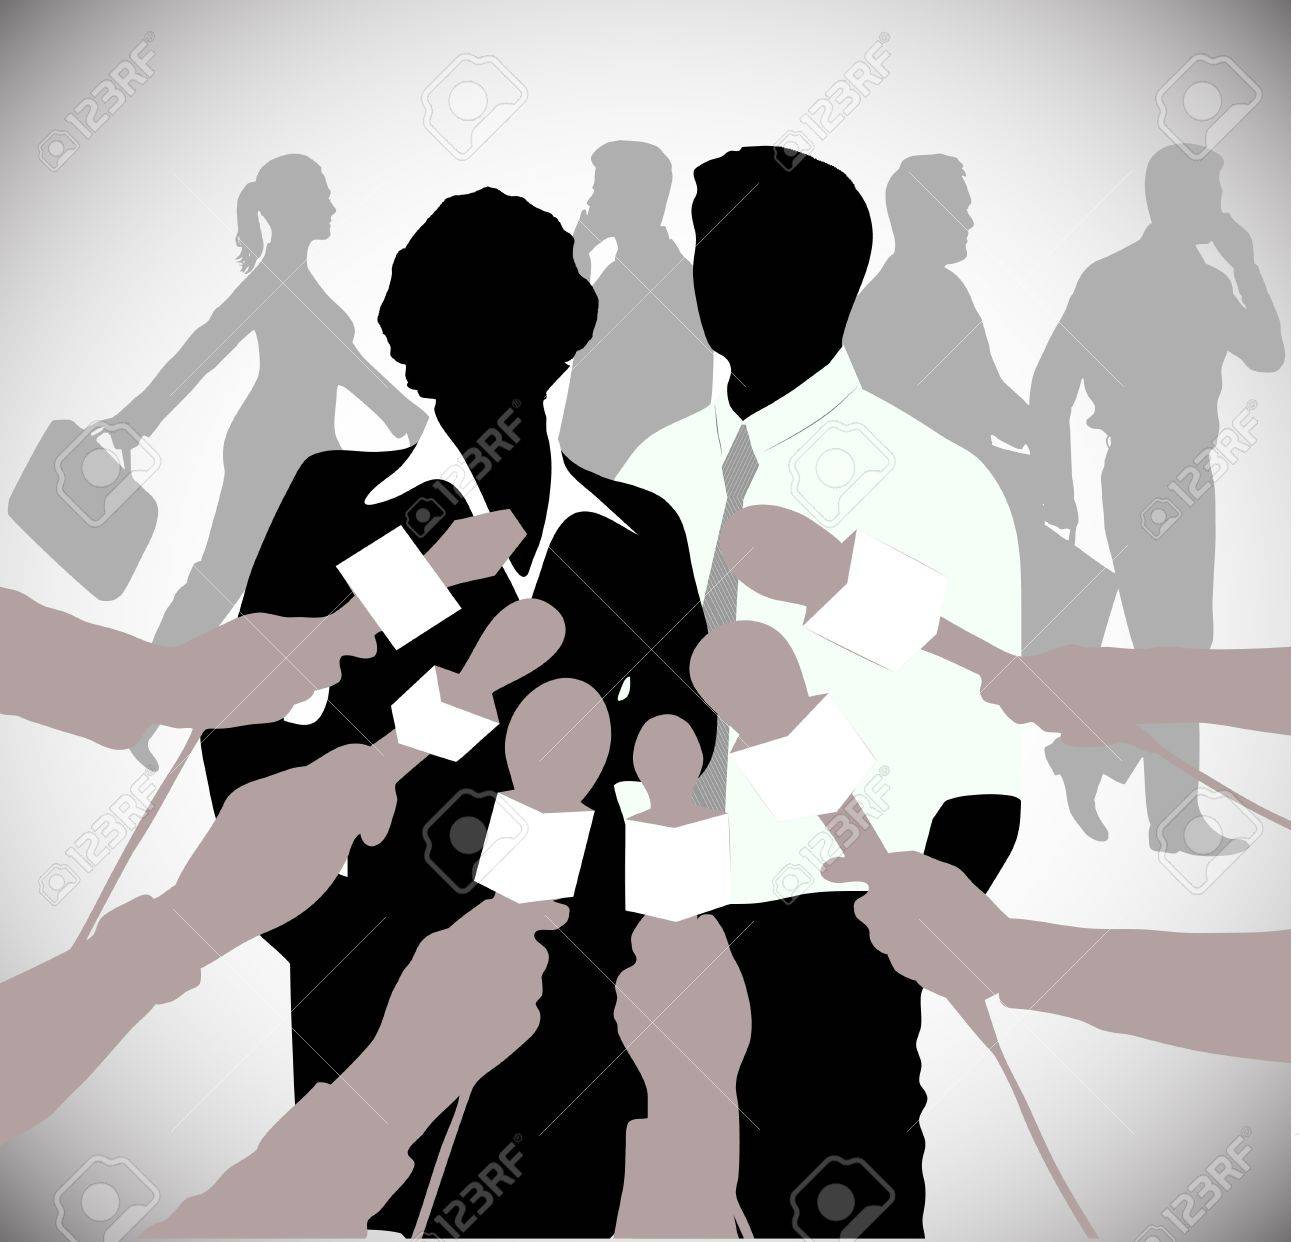 on the image the politician giving to interview is presented Stock Vector - 16930678